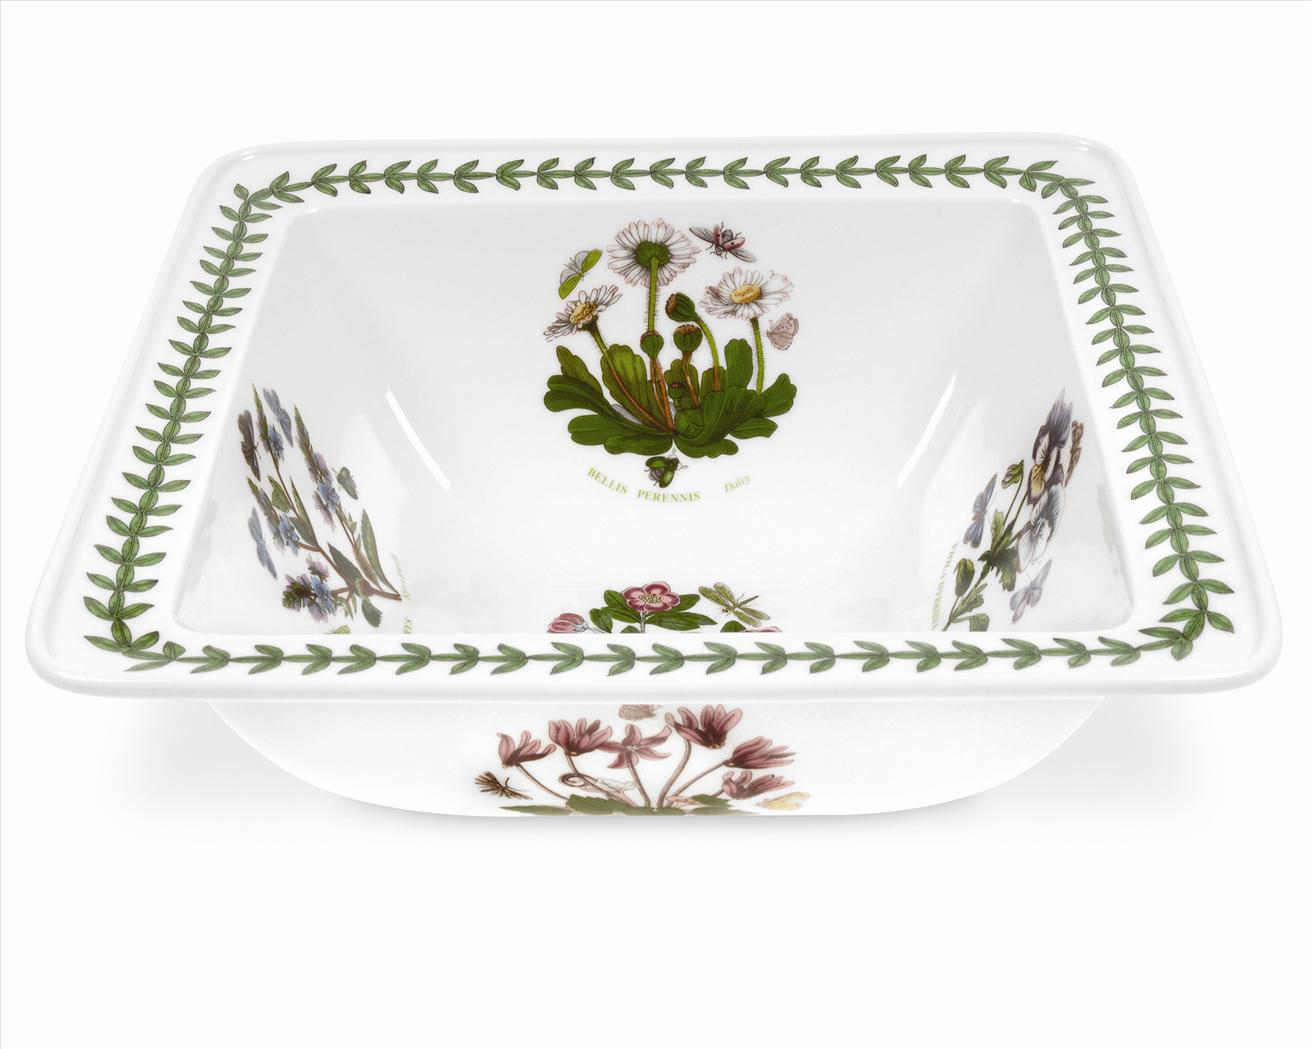 Botanic Garden 10.5 Inch Square Salad Bowl (Assorted Motifs) image number 0